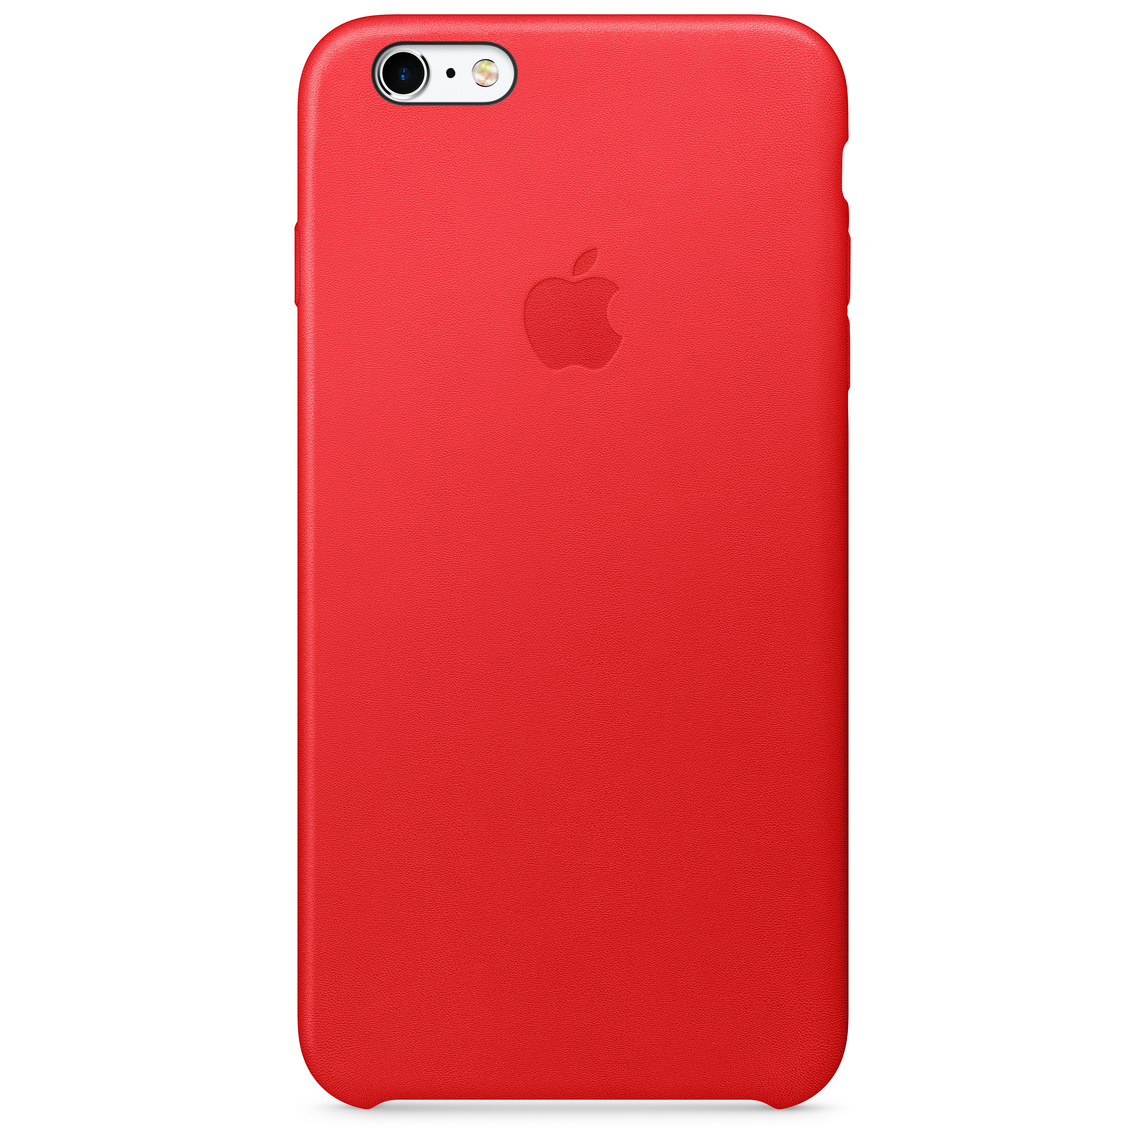 new concept cd381 12977 iPhone 6 Plus / 6s Plus Leather Case - (PRODUCT)RED